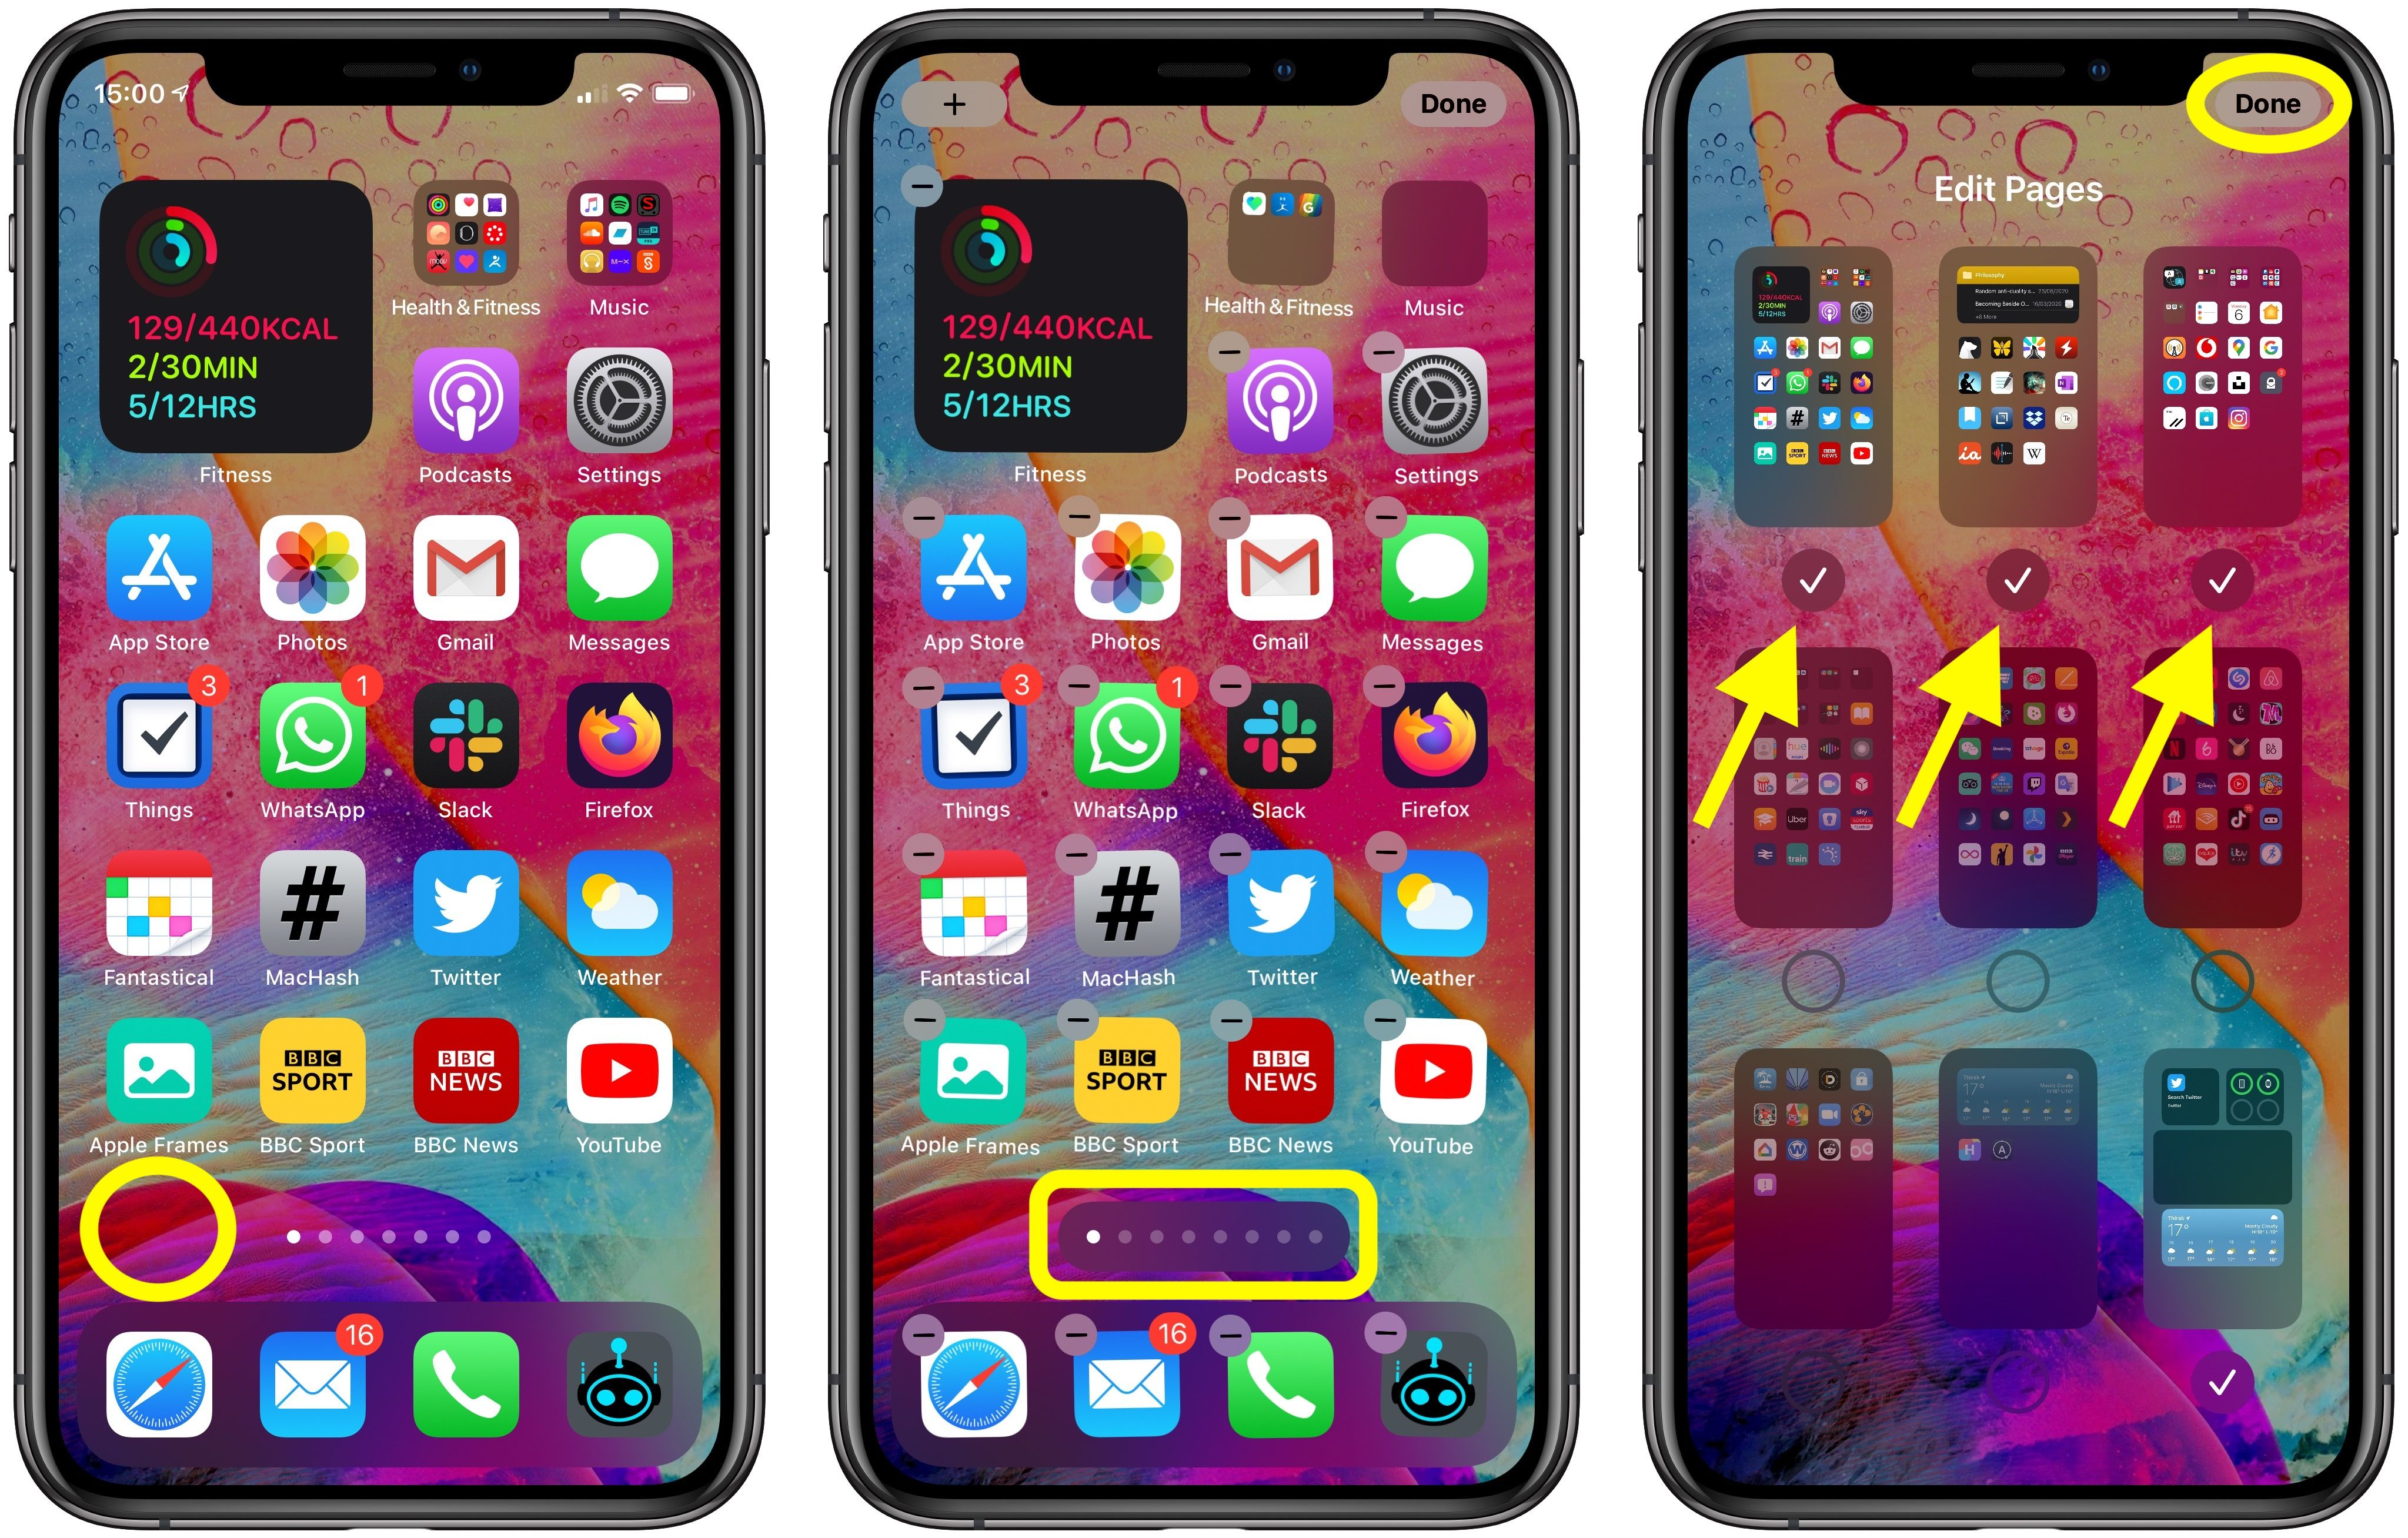 How To Hide Home Screen App Pages On Iphone In Ios 14 Https Replug Link 1711ea80 In 2020 Homescreen Hide Apps Iphone Organization